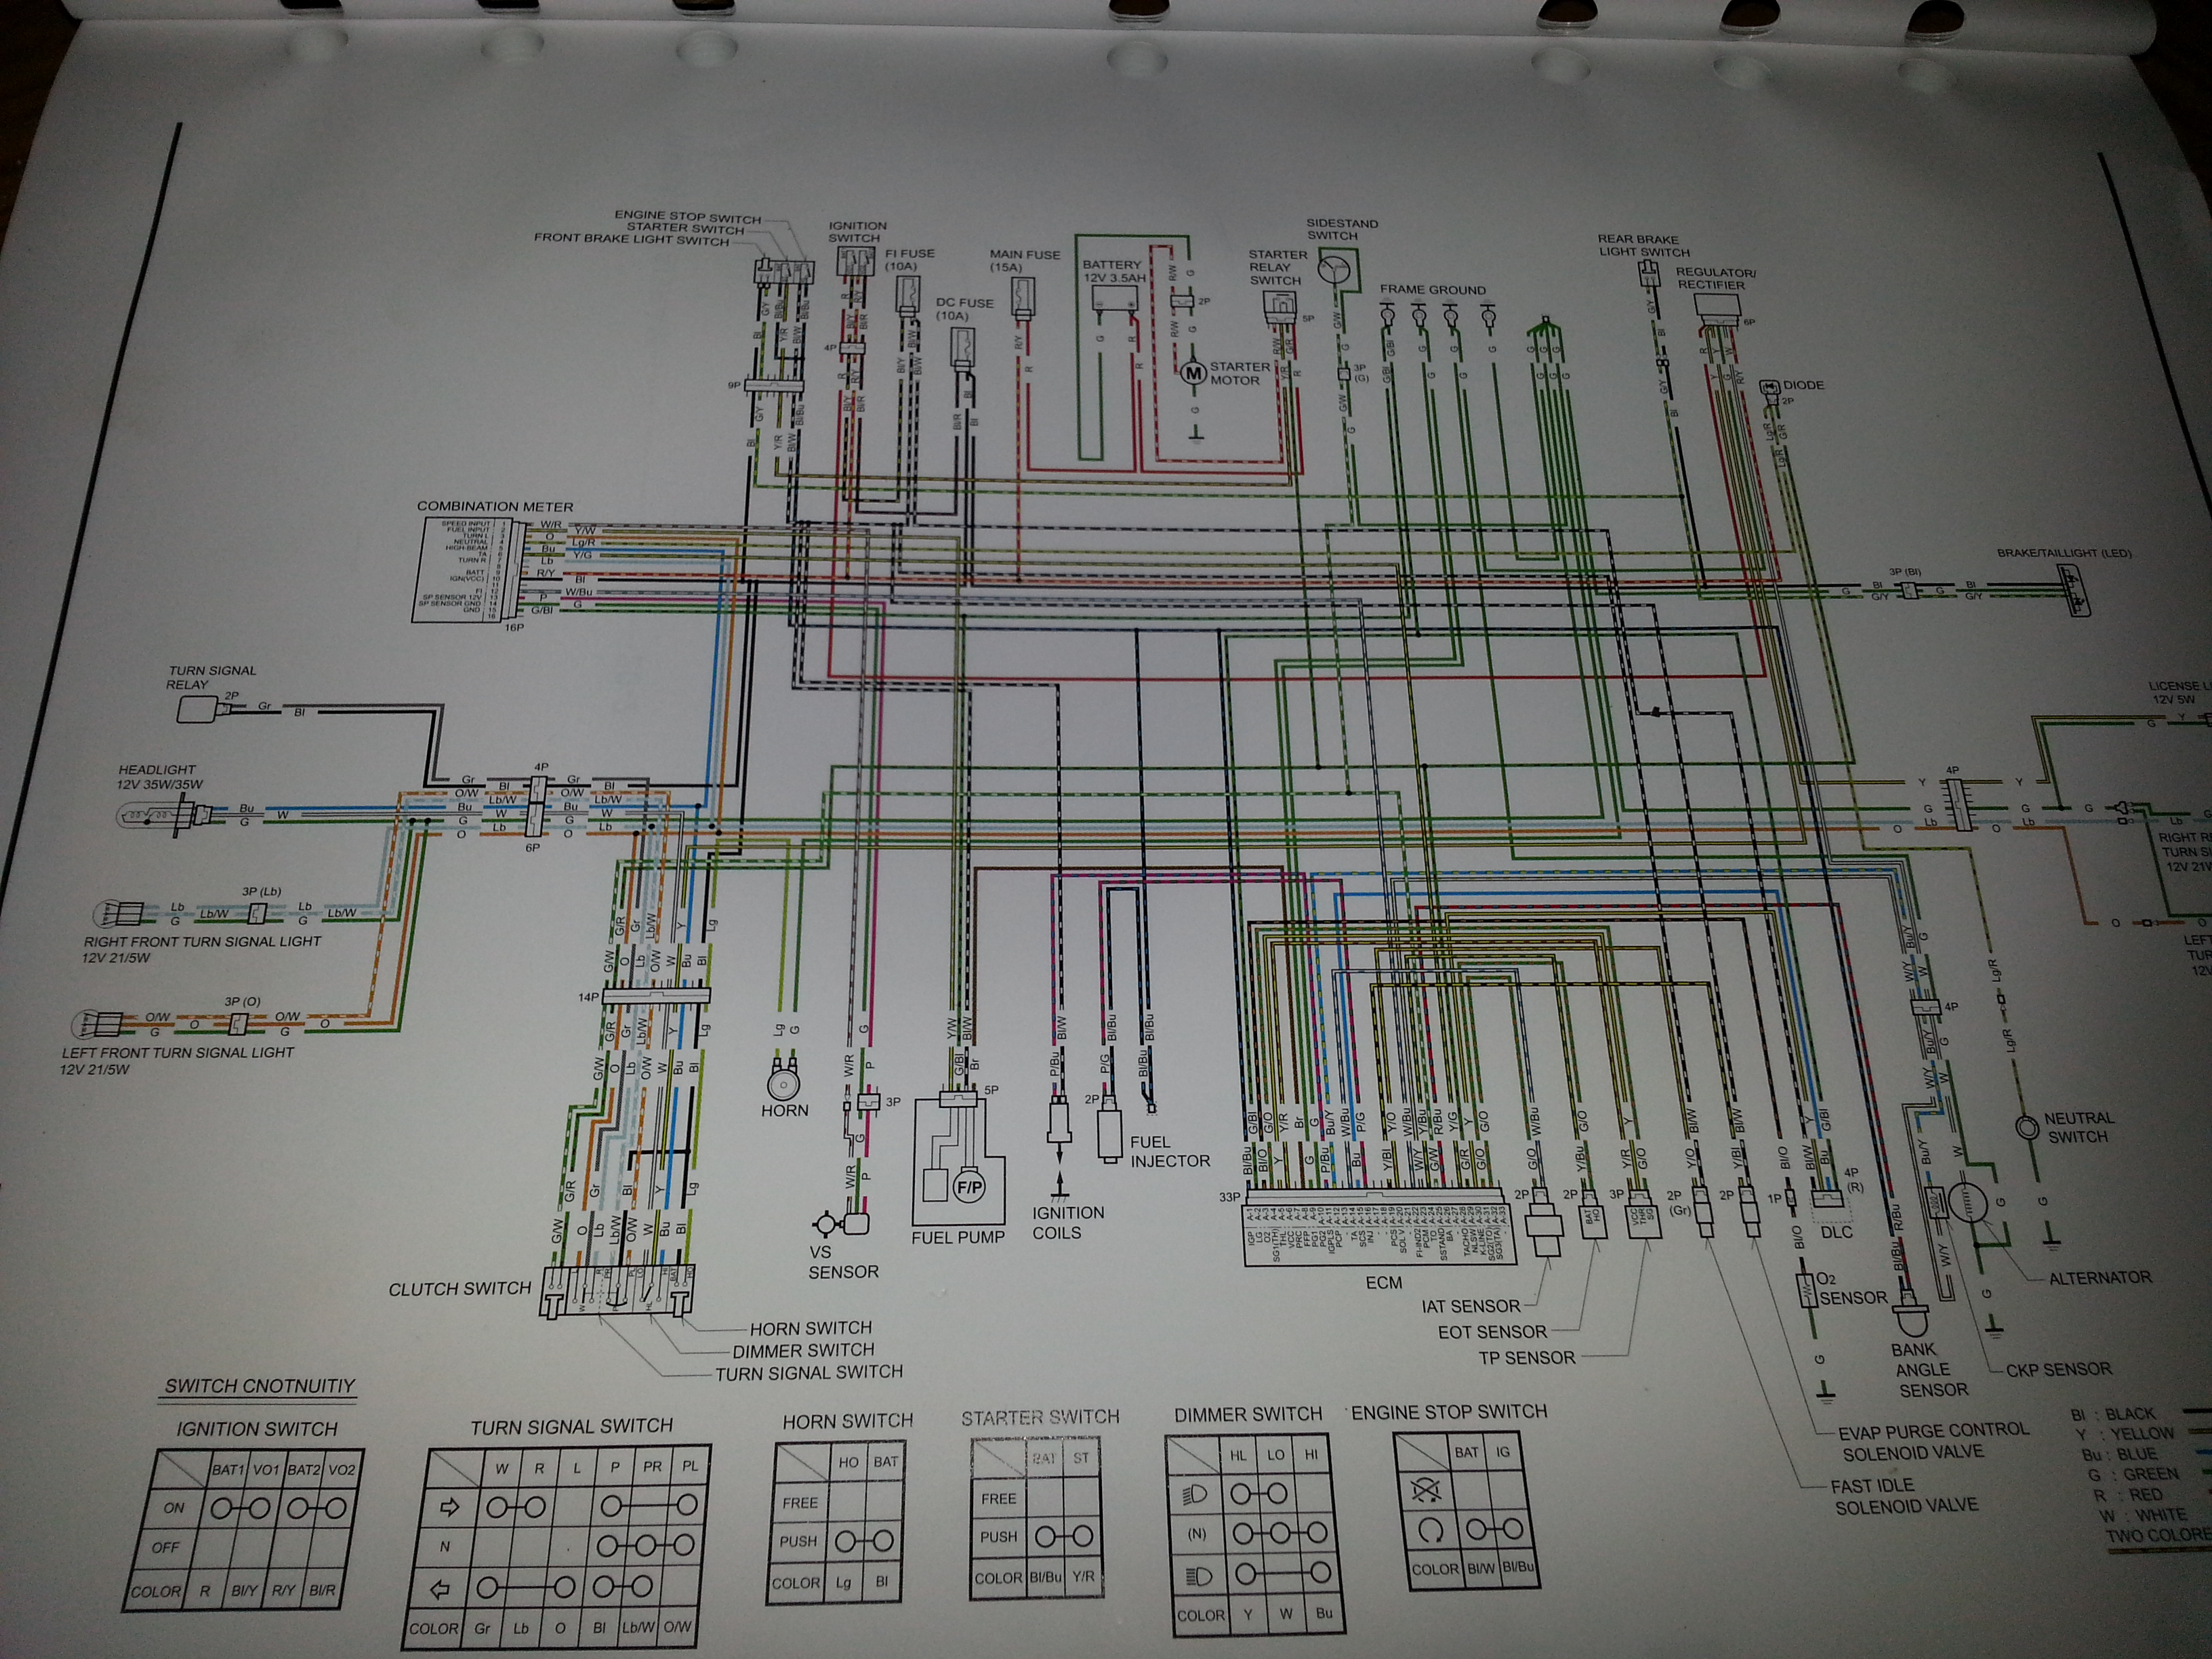 cbr250r wiring diagram schema wiring diagram preview Electrical Wiring Diagrams